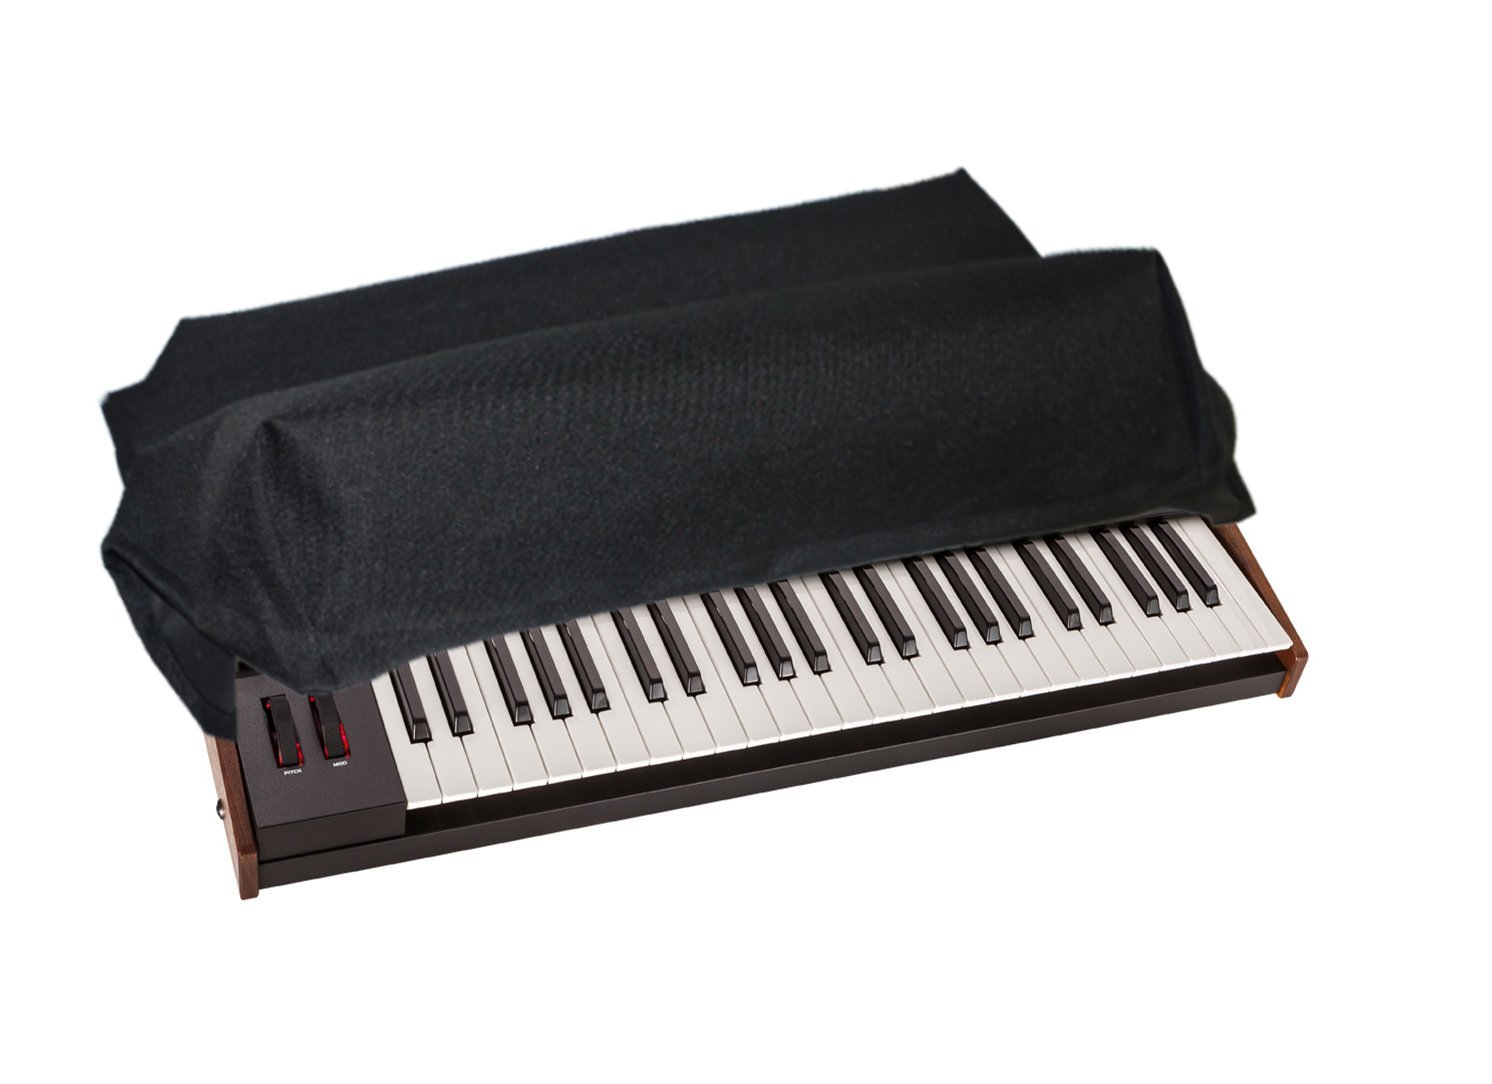 Dust Cover & Protector for DAVE SMITH INSTRUMENTS OB-6 / PROPHET 6 KEYBOARDS [Water Resistant, Premium Black Fabric, Heavy Duty] by DigitalDeckCovers DSI6-BLK